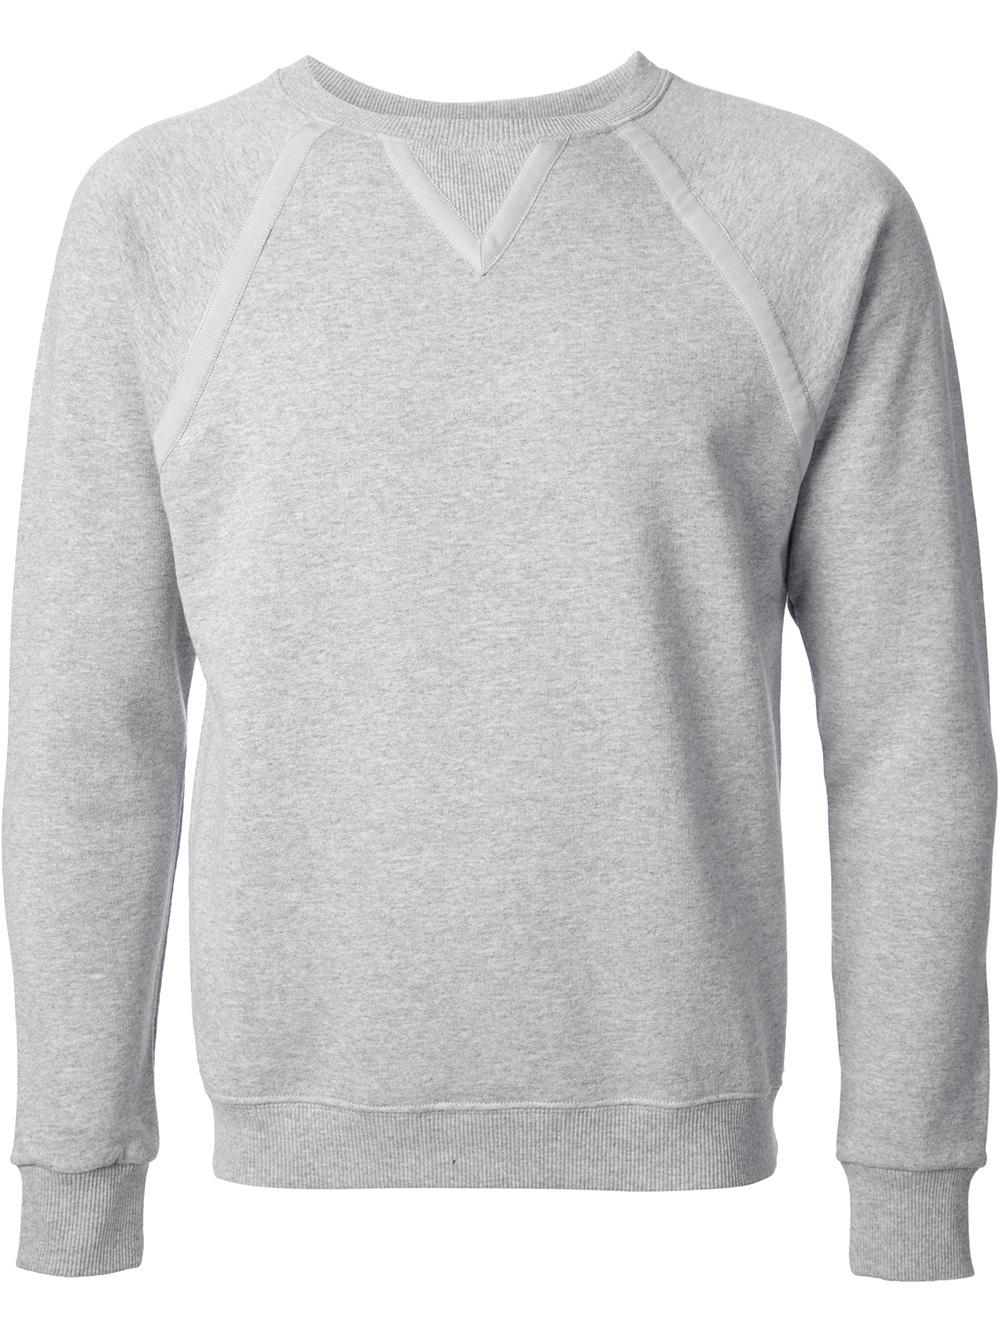 Shop the Latest Collection of Crew Neck Sweaters for Men Online at 440v.cf FREE SHIPPING AVAILABLE! Macy's Presents: The Edit- A curated mix of fashion and inspiration Check It Out. Tommy Hilfiger Men's Signature Solid Crew-Neck Classic Fit Sweater, Created for Macy's.